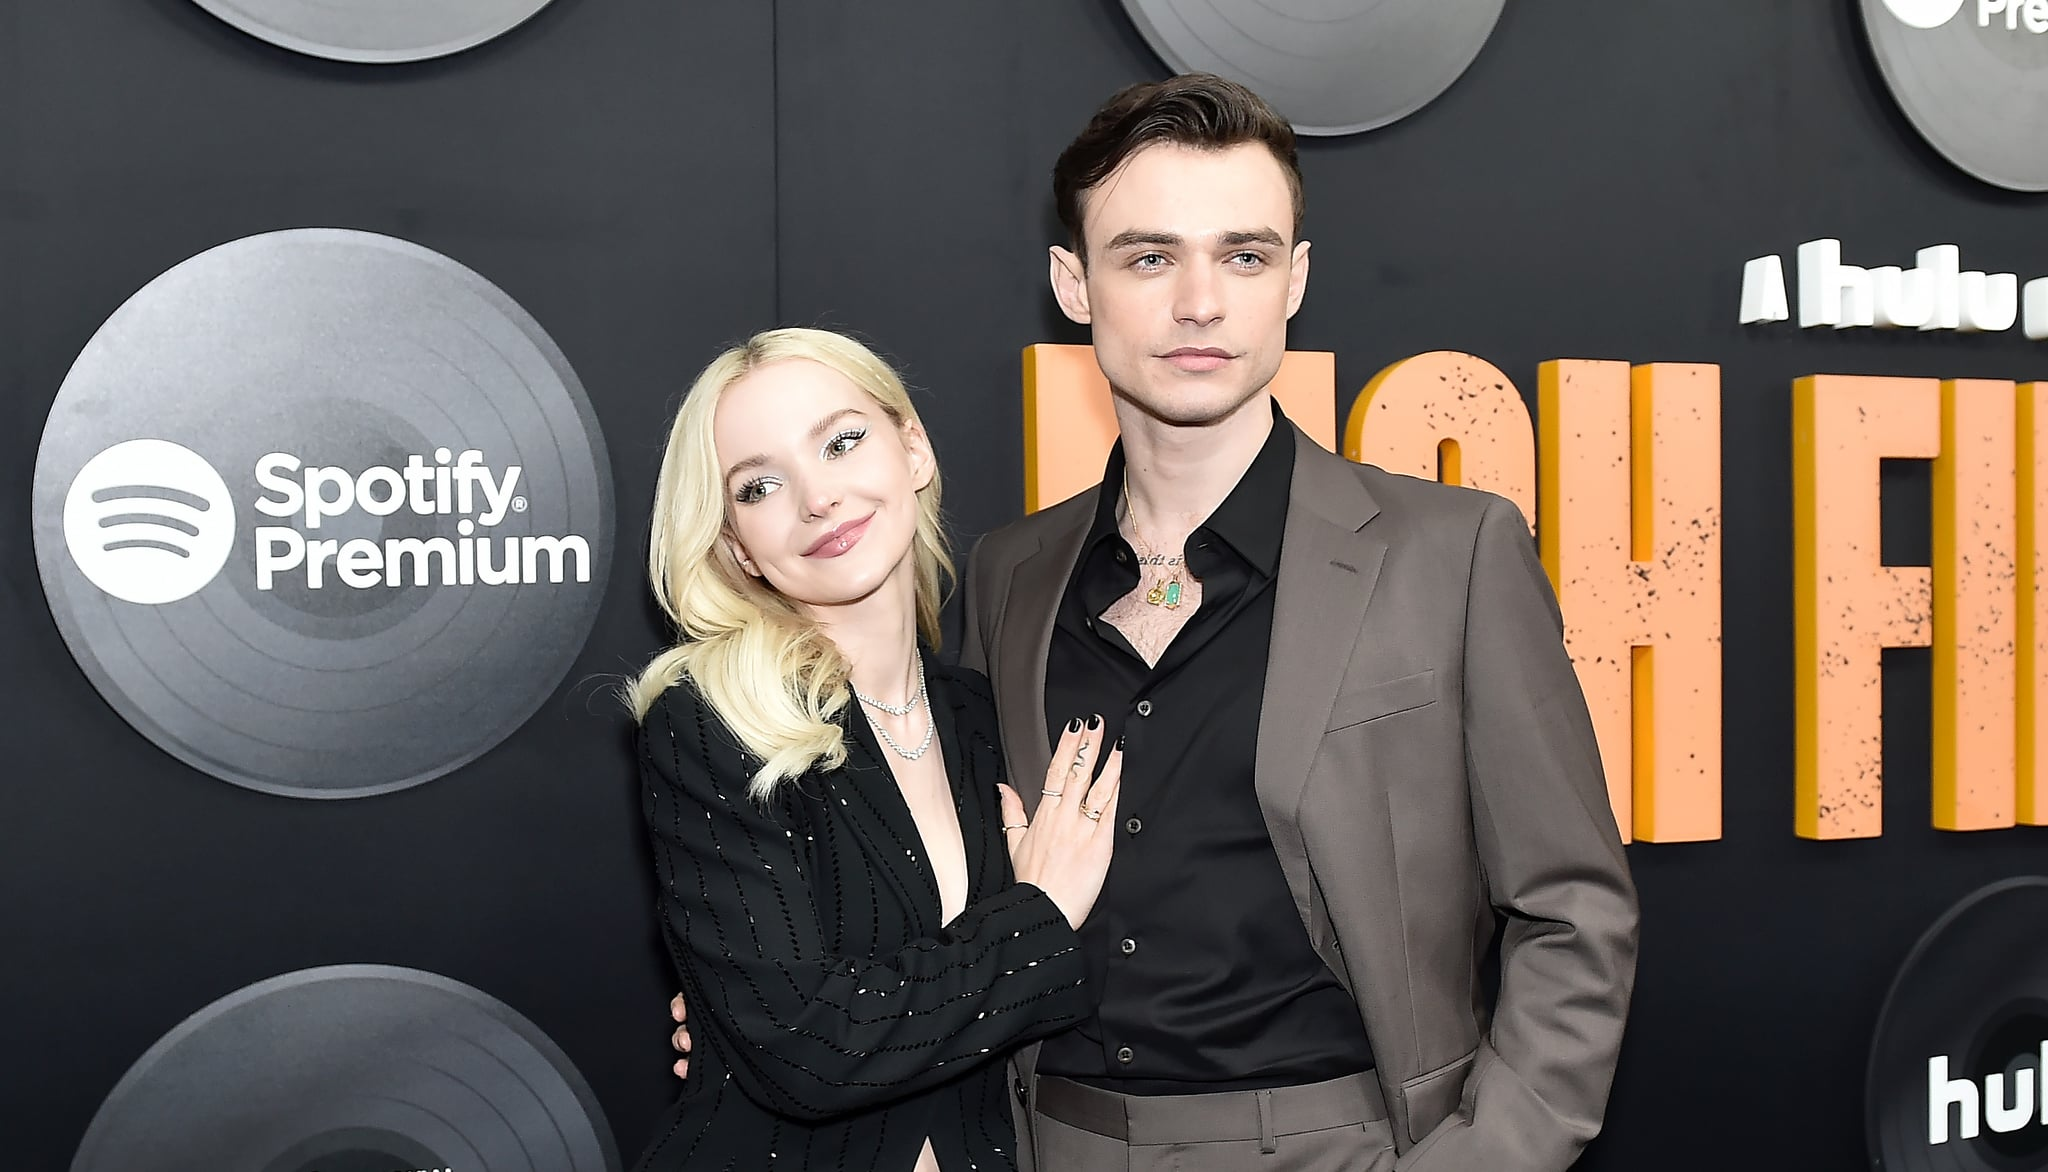 NEW YORK, NEW YORK - FEBRUARY 13: Dove Cameron and Thomas Doherty attend Hulu's